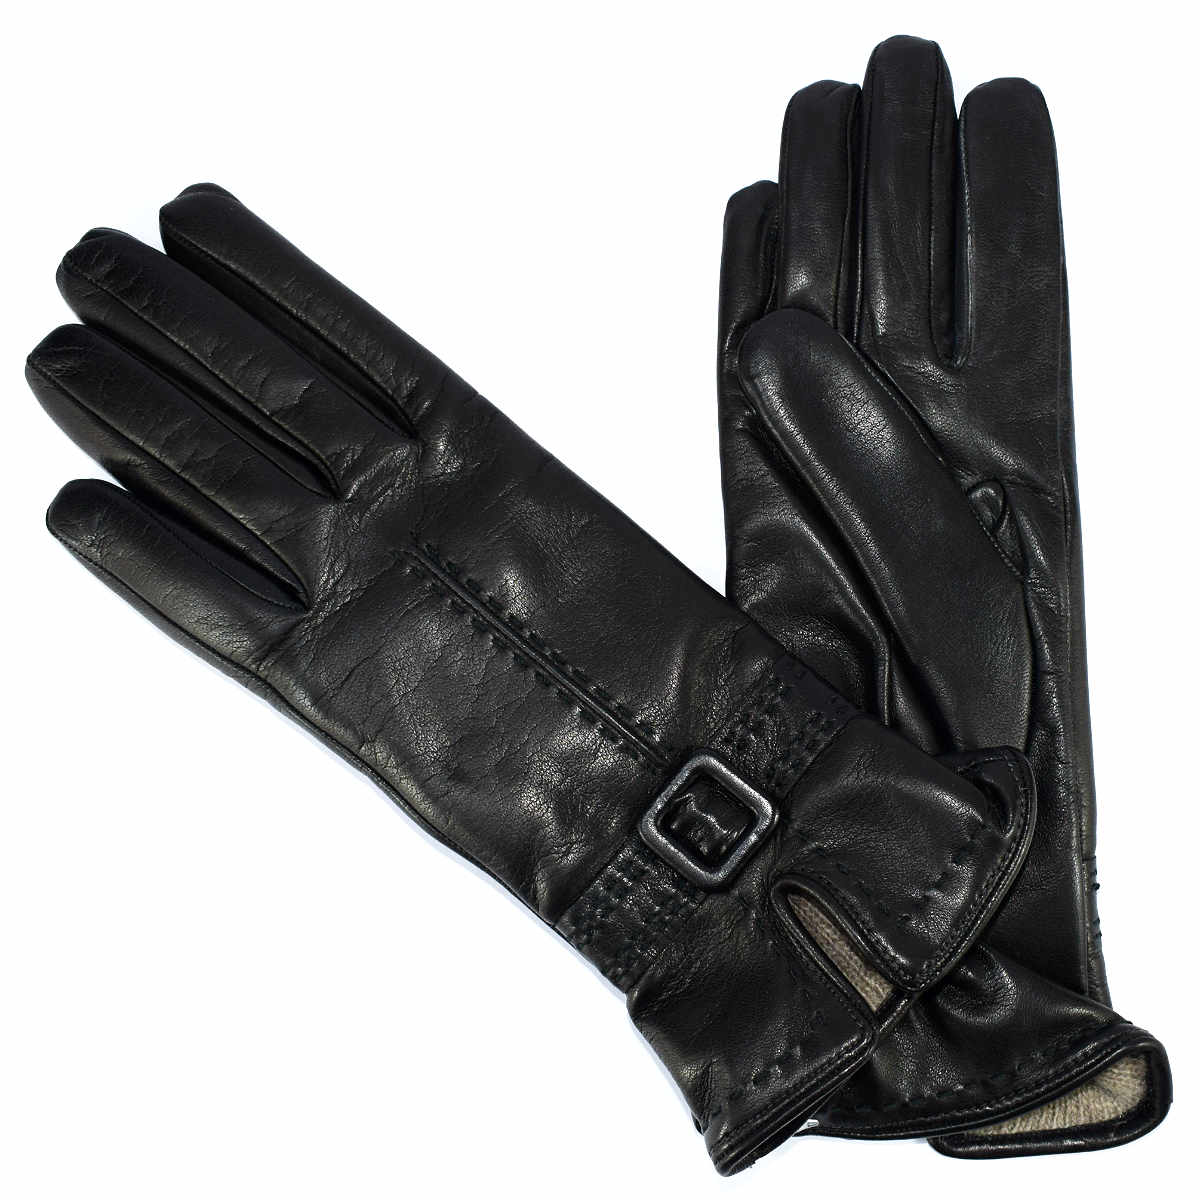 8PR91 NAPPA WOMAN GLOVE WITH BUCKLE by Bottega Fiorentina